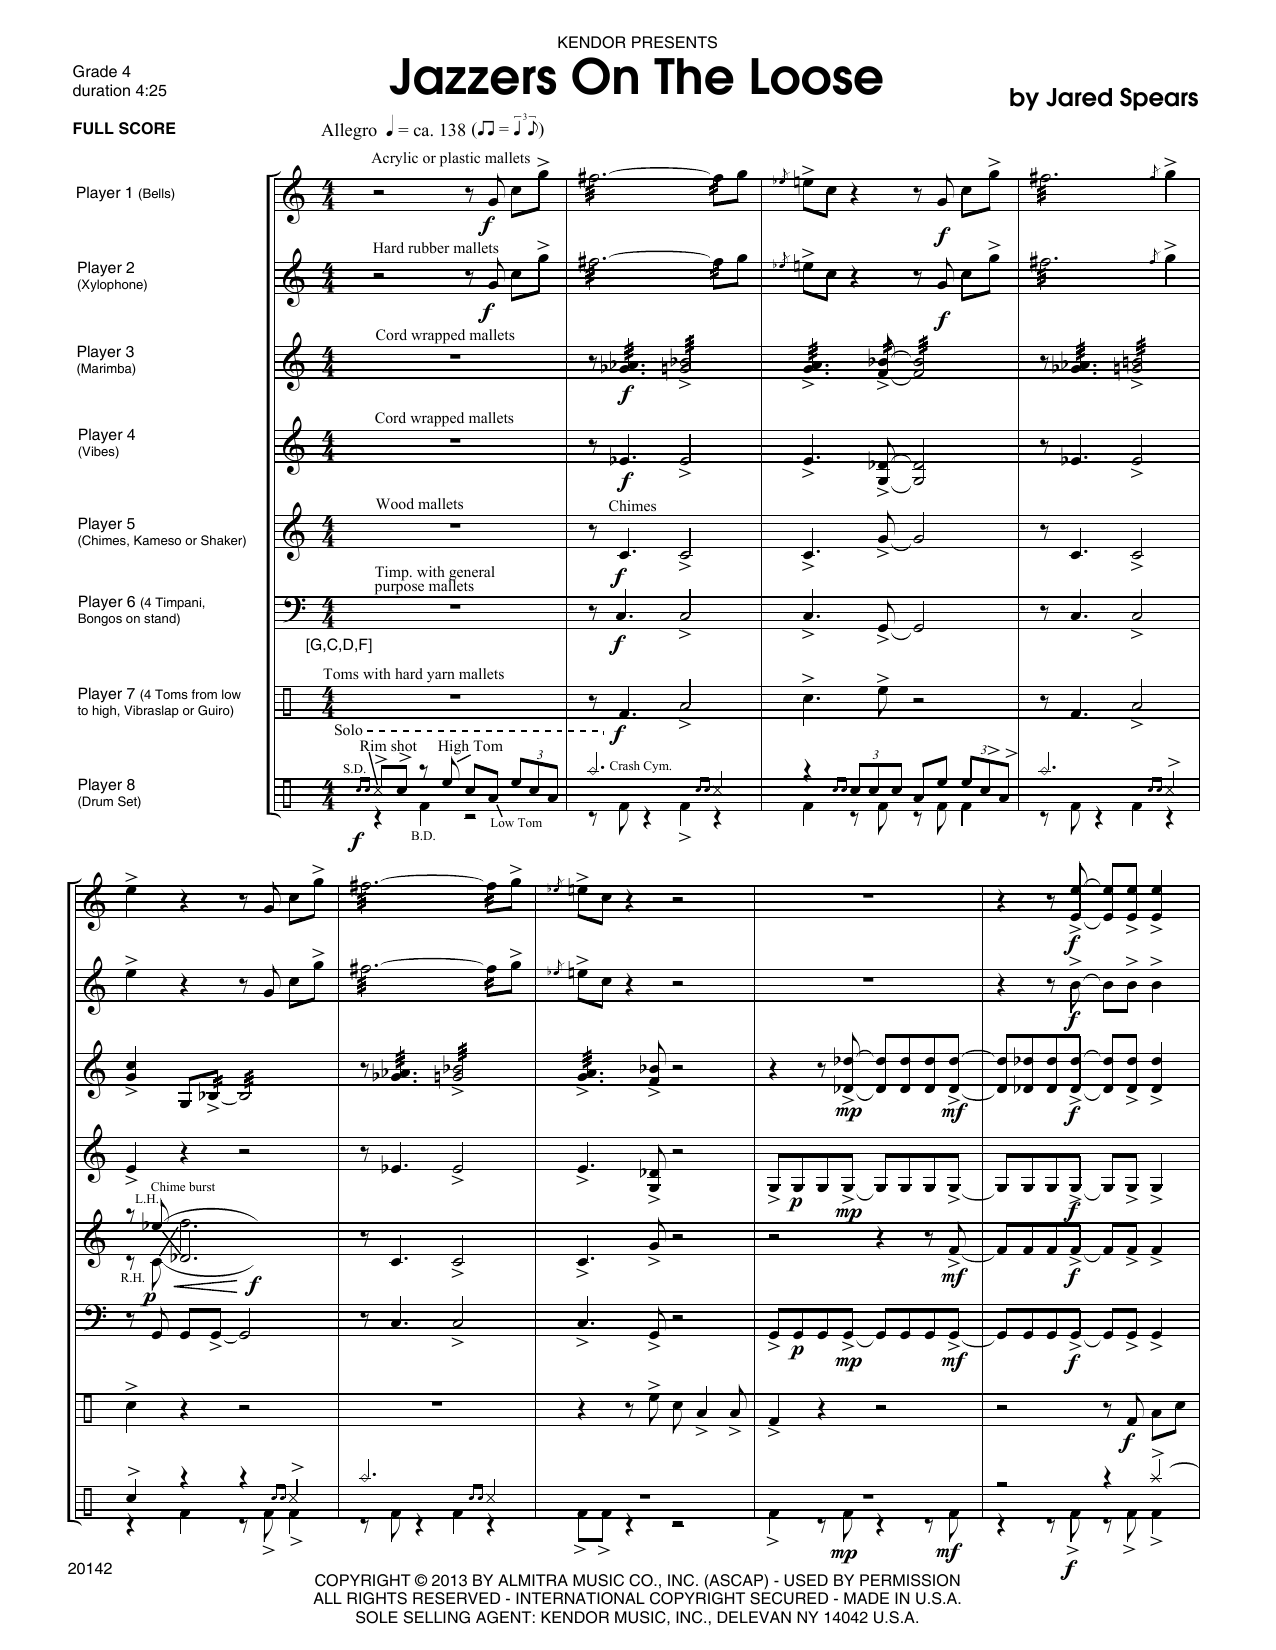 Jazzers On The Loose (COMPLETE) sheet music for percussions by Jared Spears. Score Image Preview.